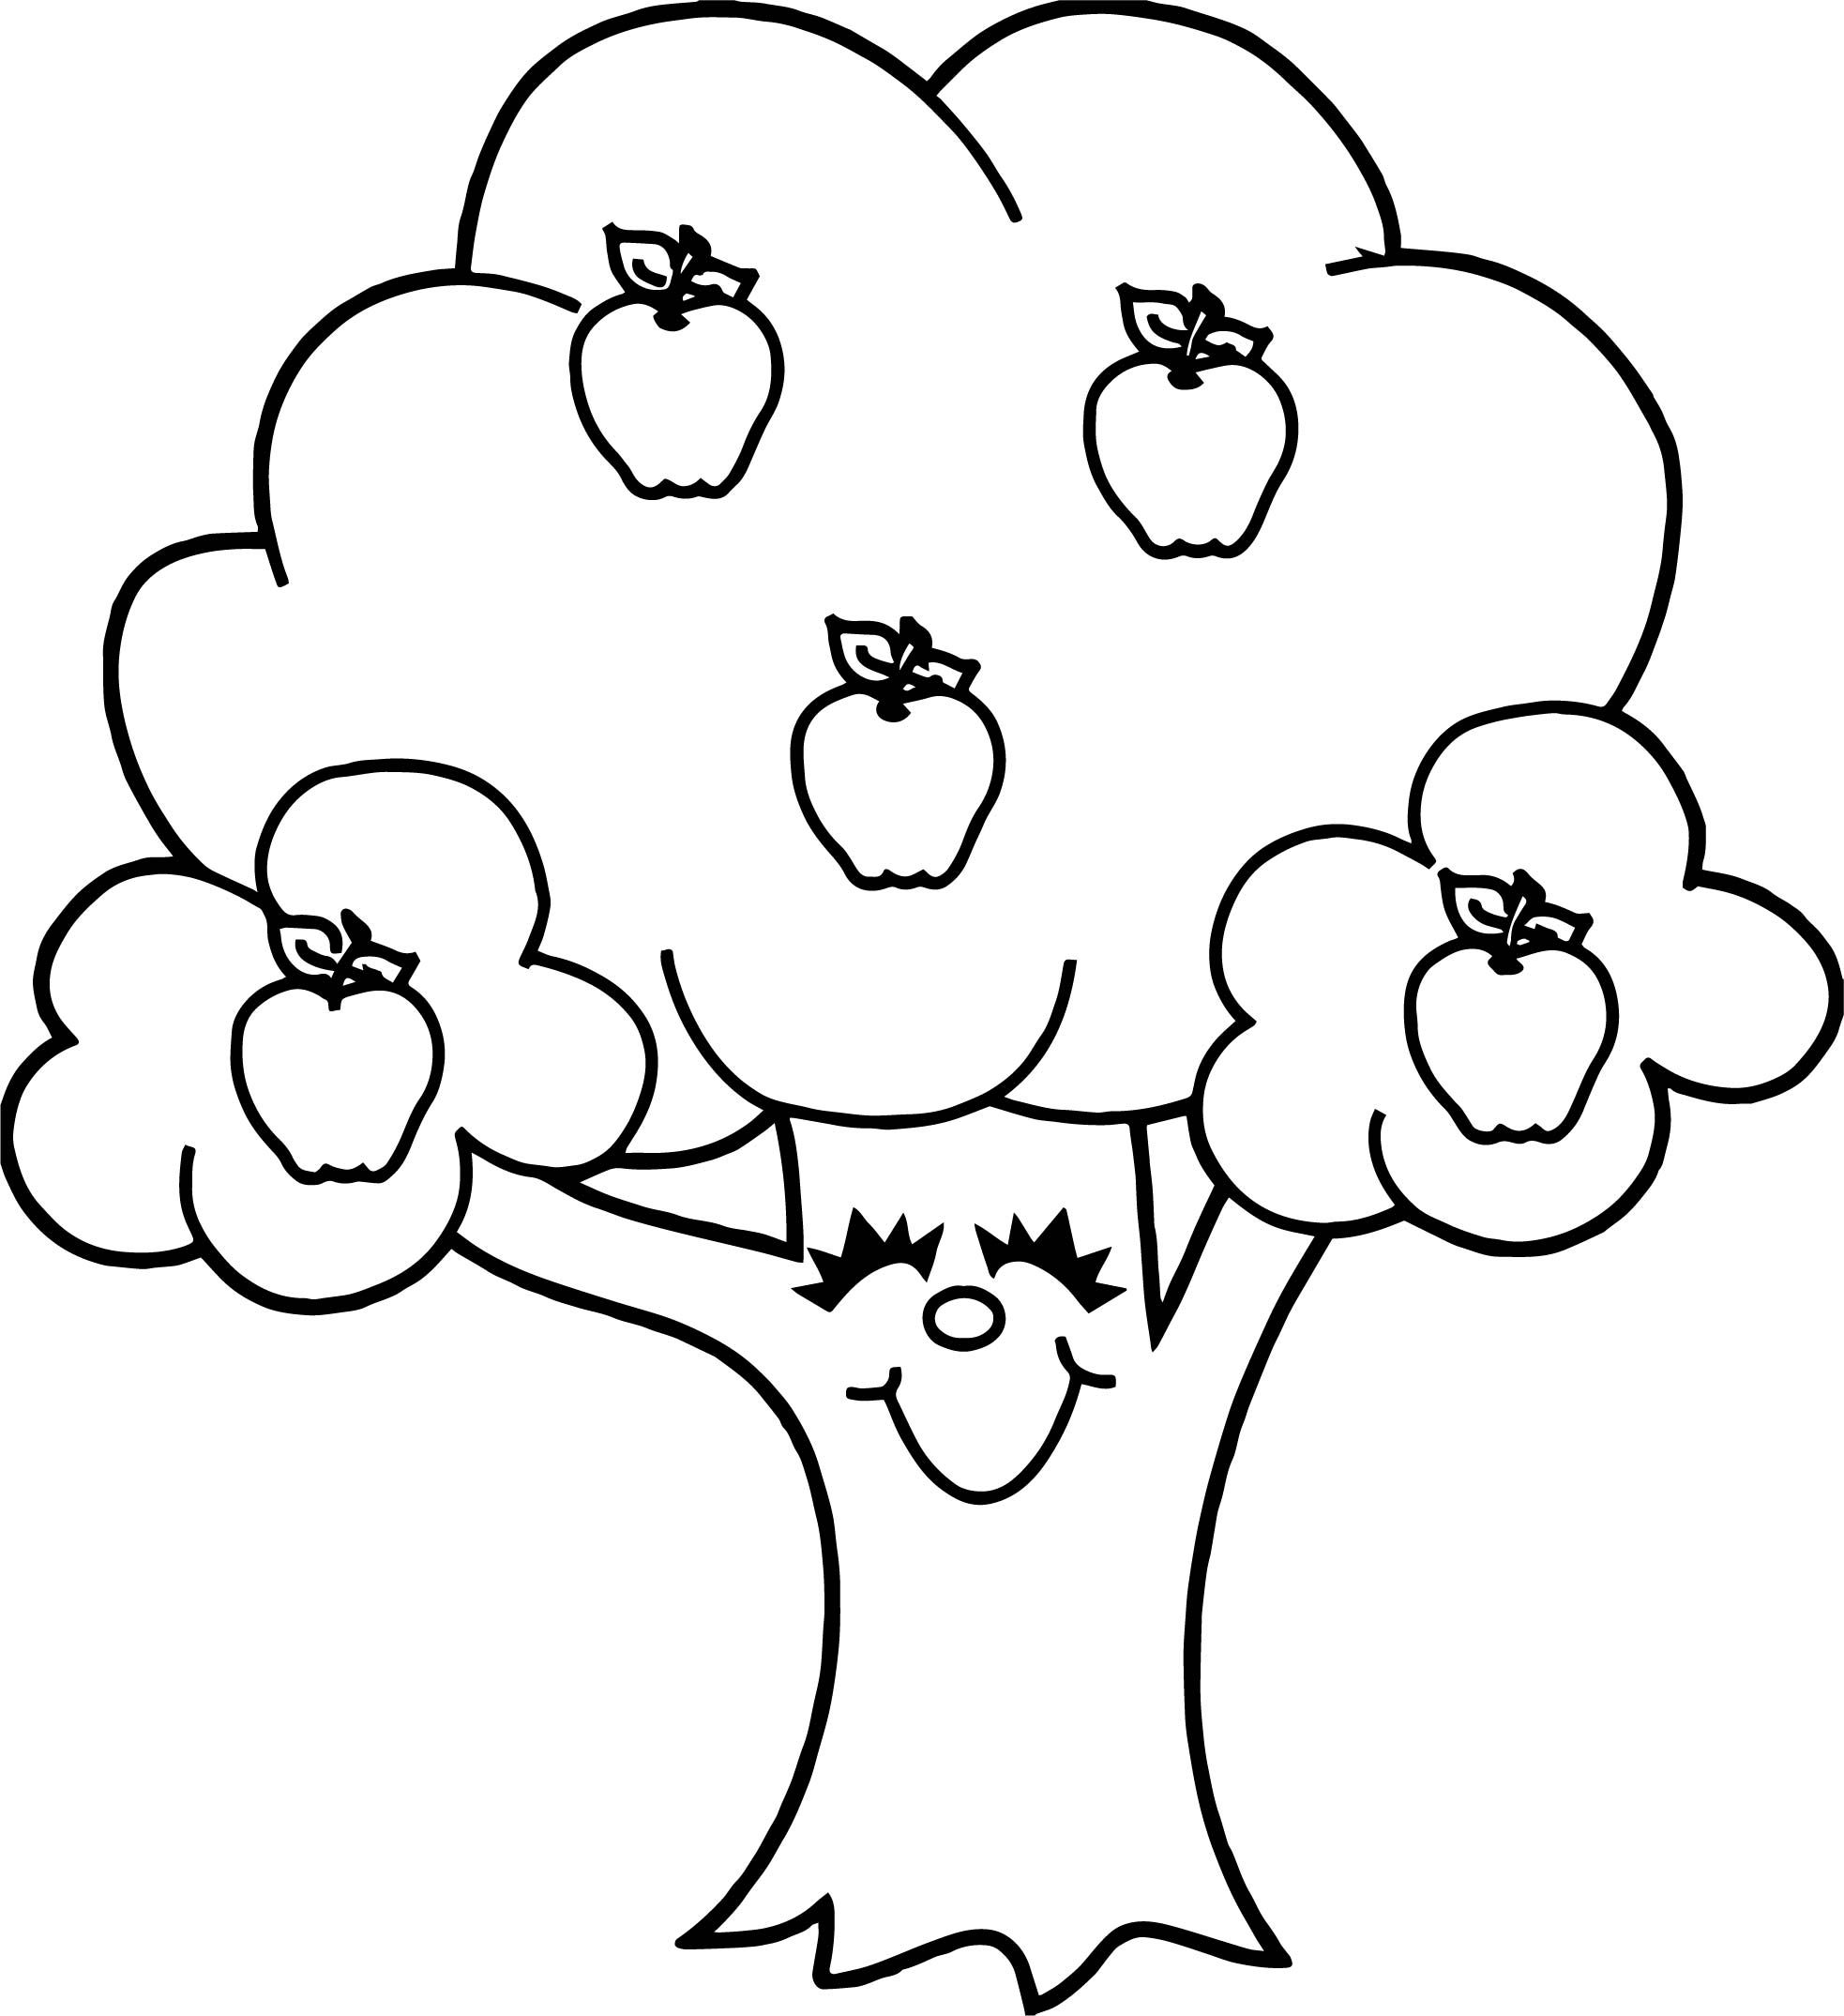 Awesome Funny Apple Tree Coloring Page Apple Coloring Pages